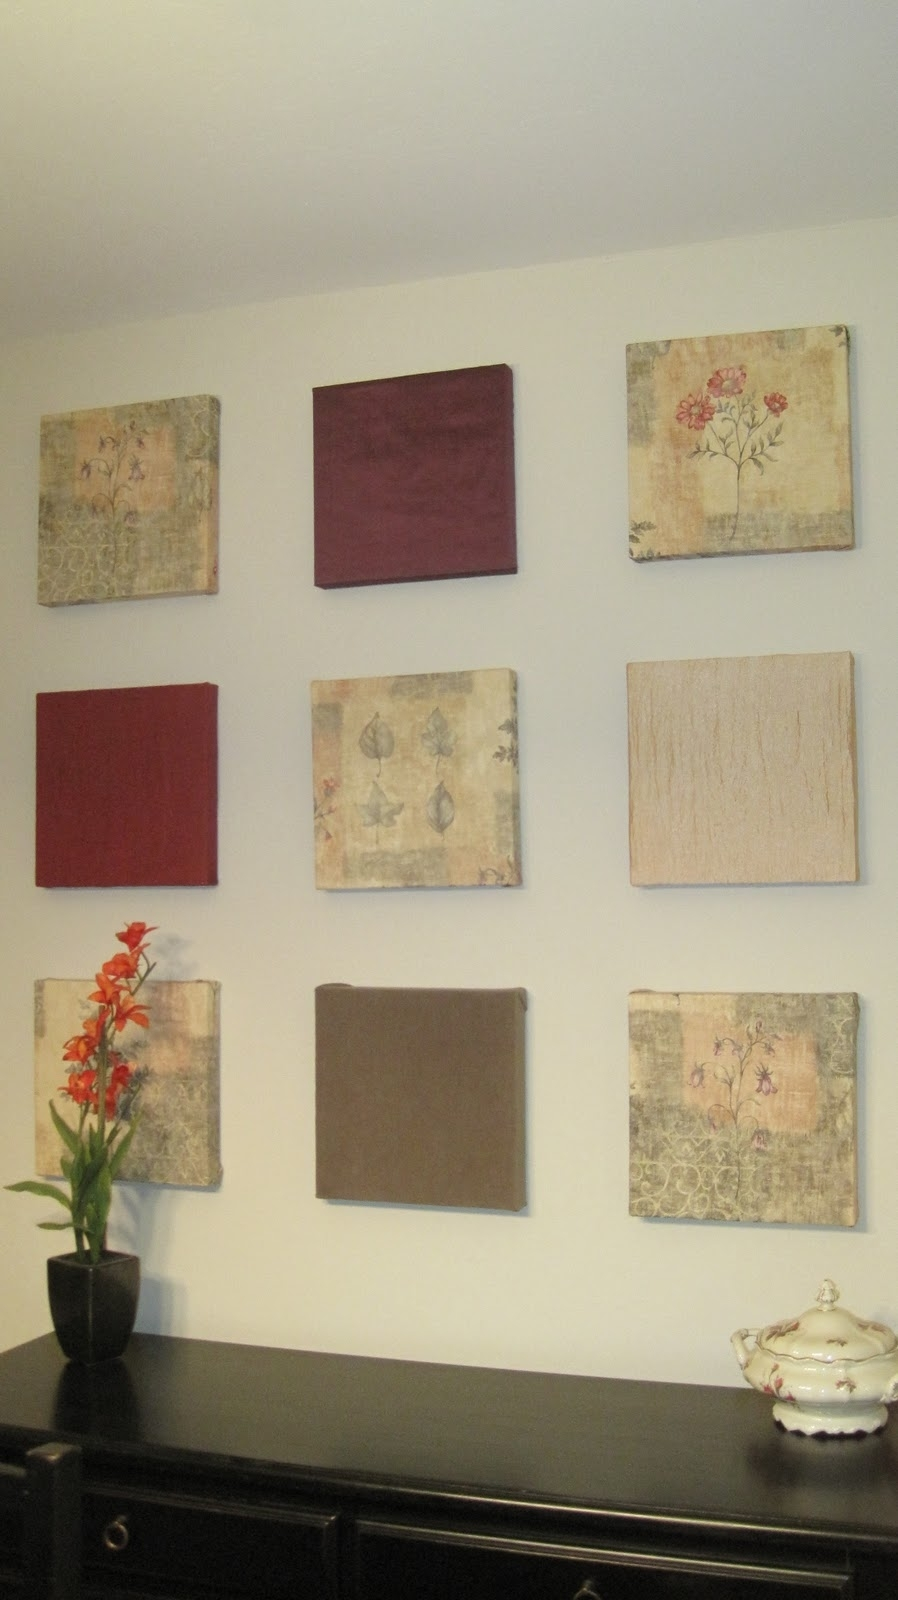 Whimsy Space: Wall Art Within Most Up To Date Fabric Square Wall Art (View 15 of 15)